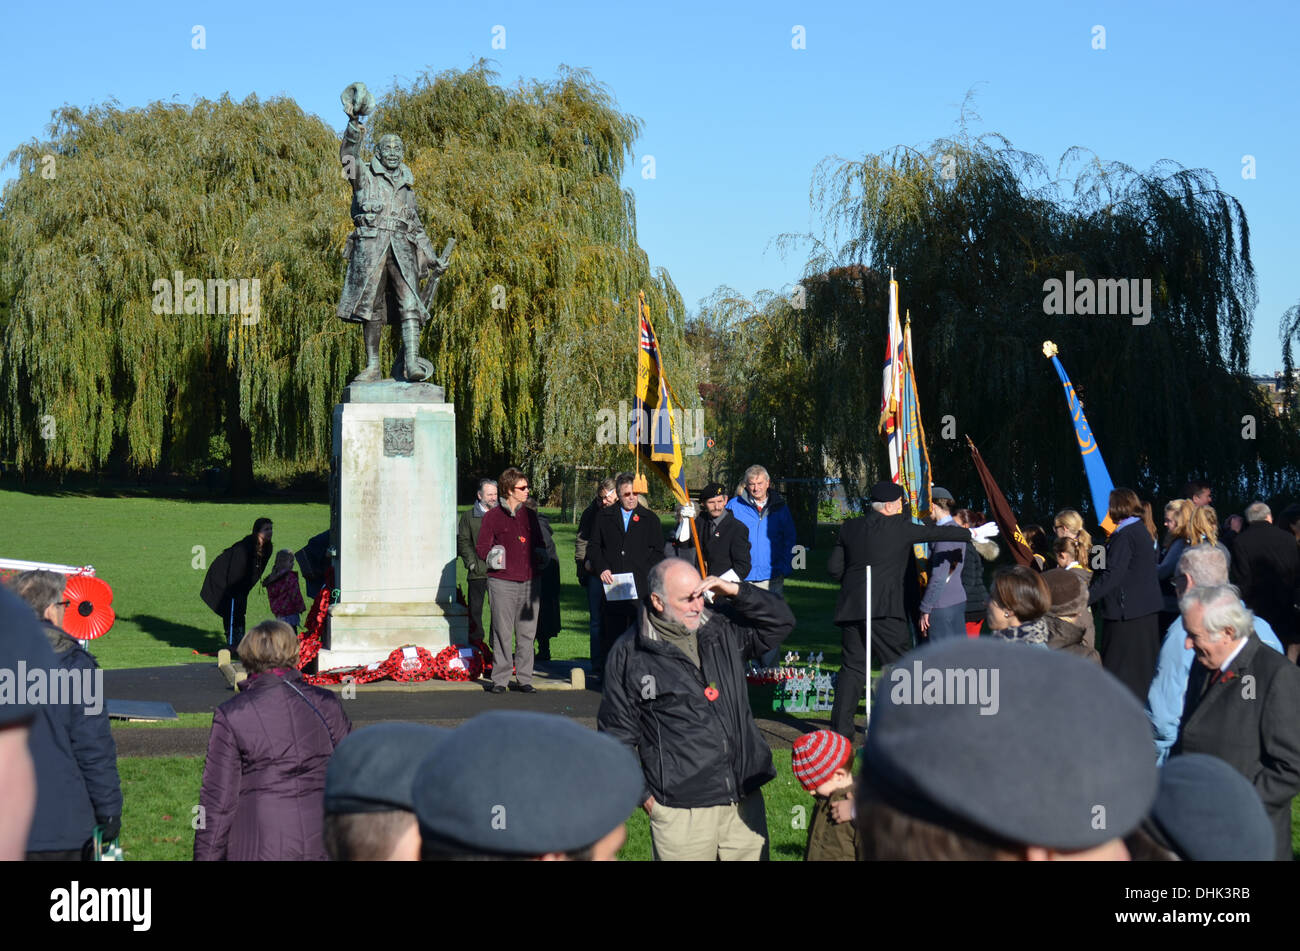 RemembranceSundayat WarMemorial Twickenham comme tout au long de l'theUK deux minutes de silence les bandes Play(Lecture) : pour honorer les morts de wws 2 Photo Stock